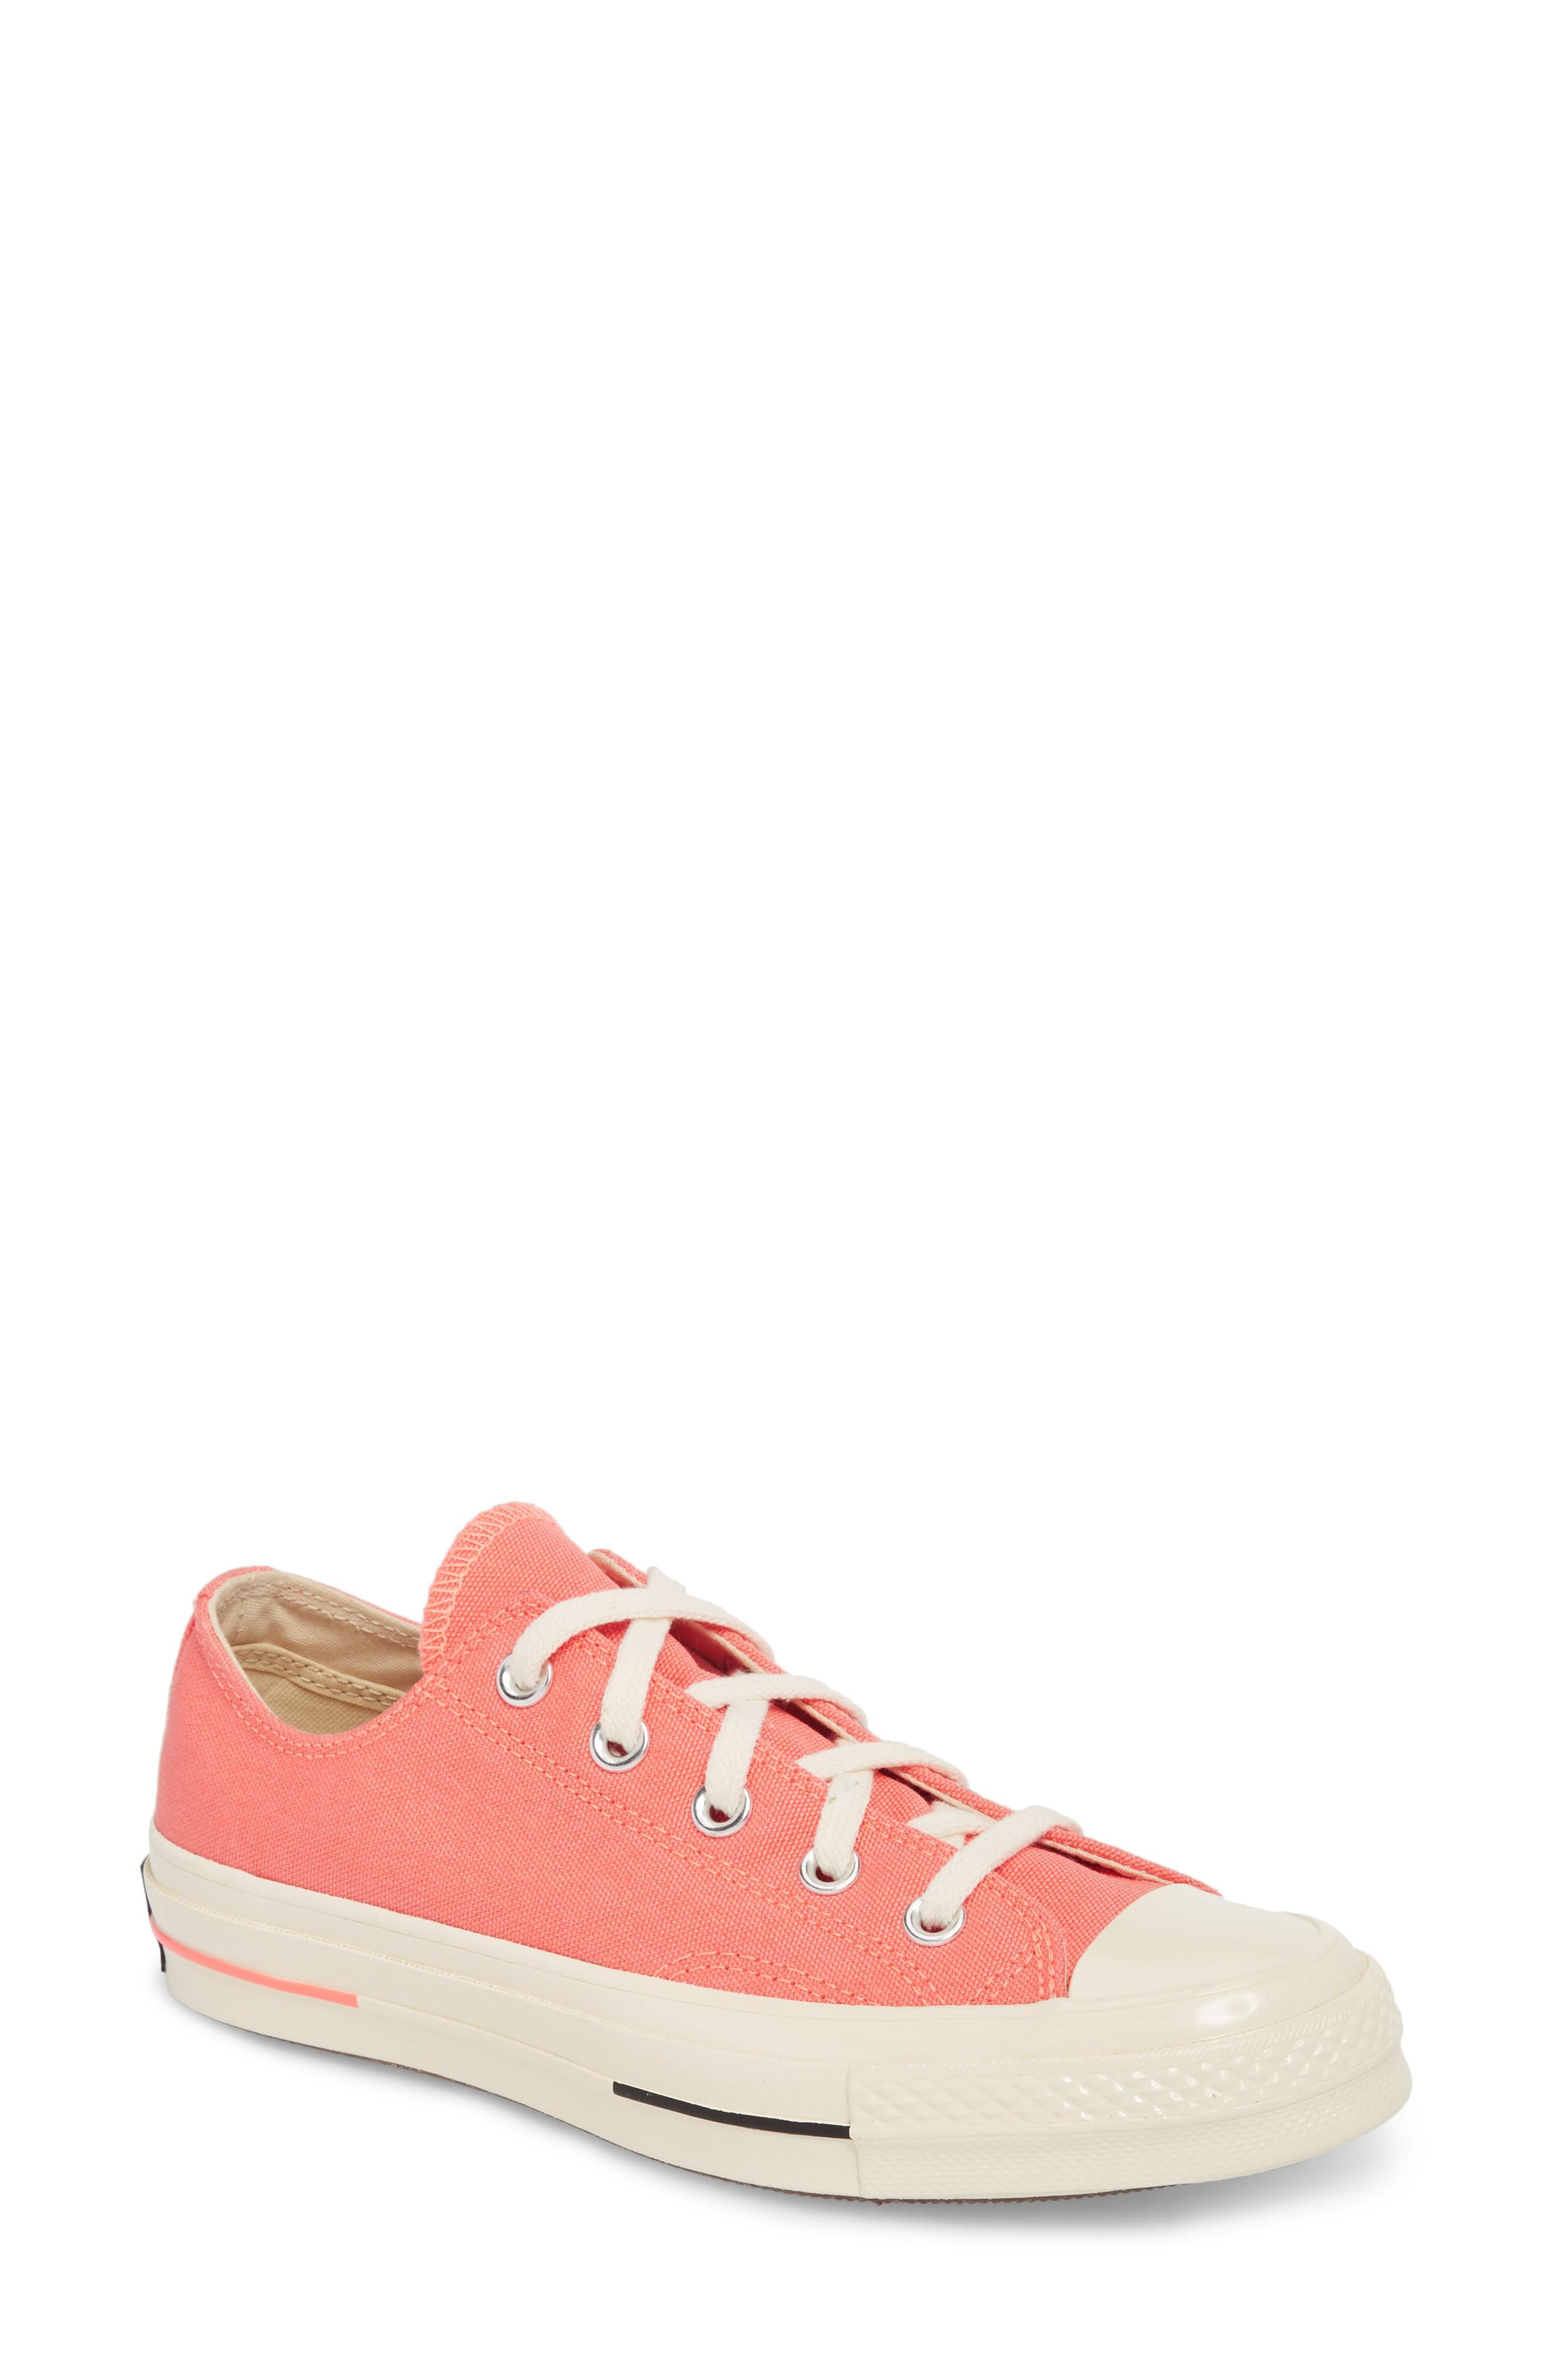 Converse Chuck Taylor All Star '70S Brights Low Top Sneaker In Crimson